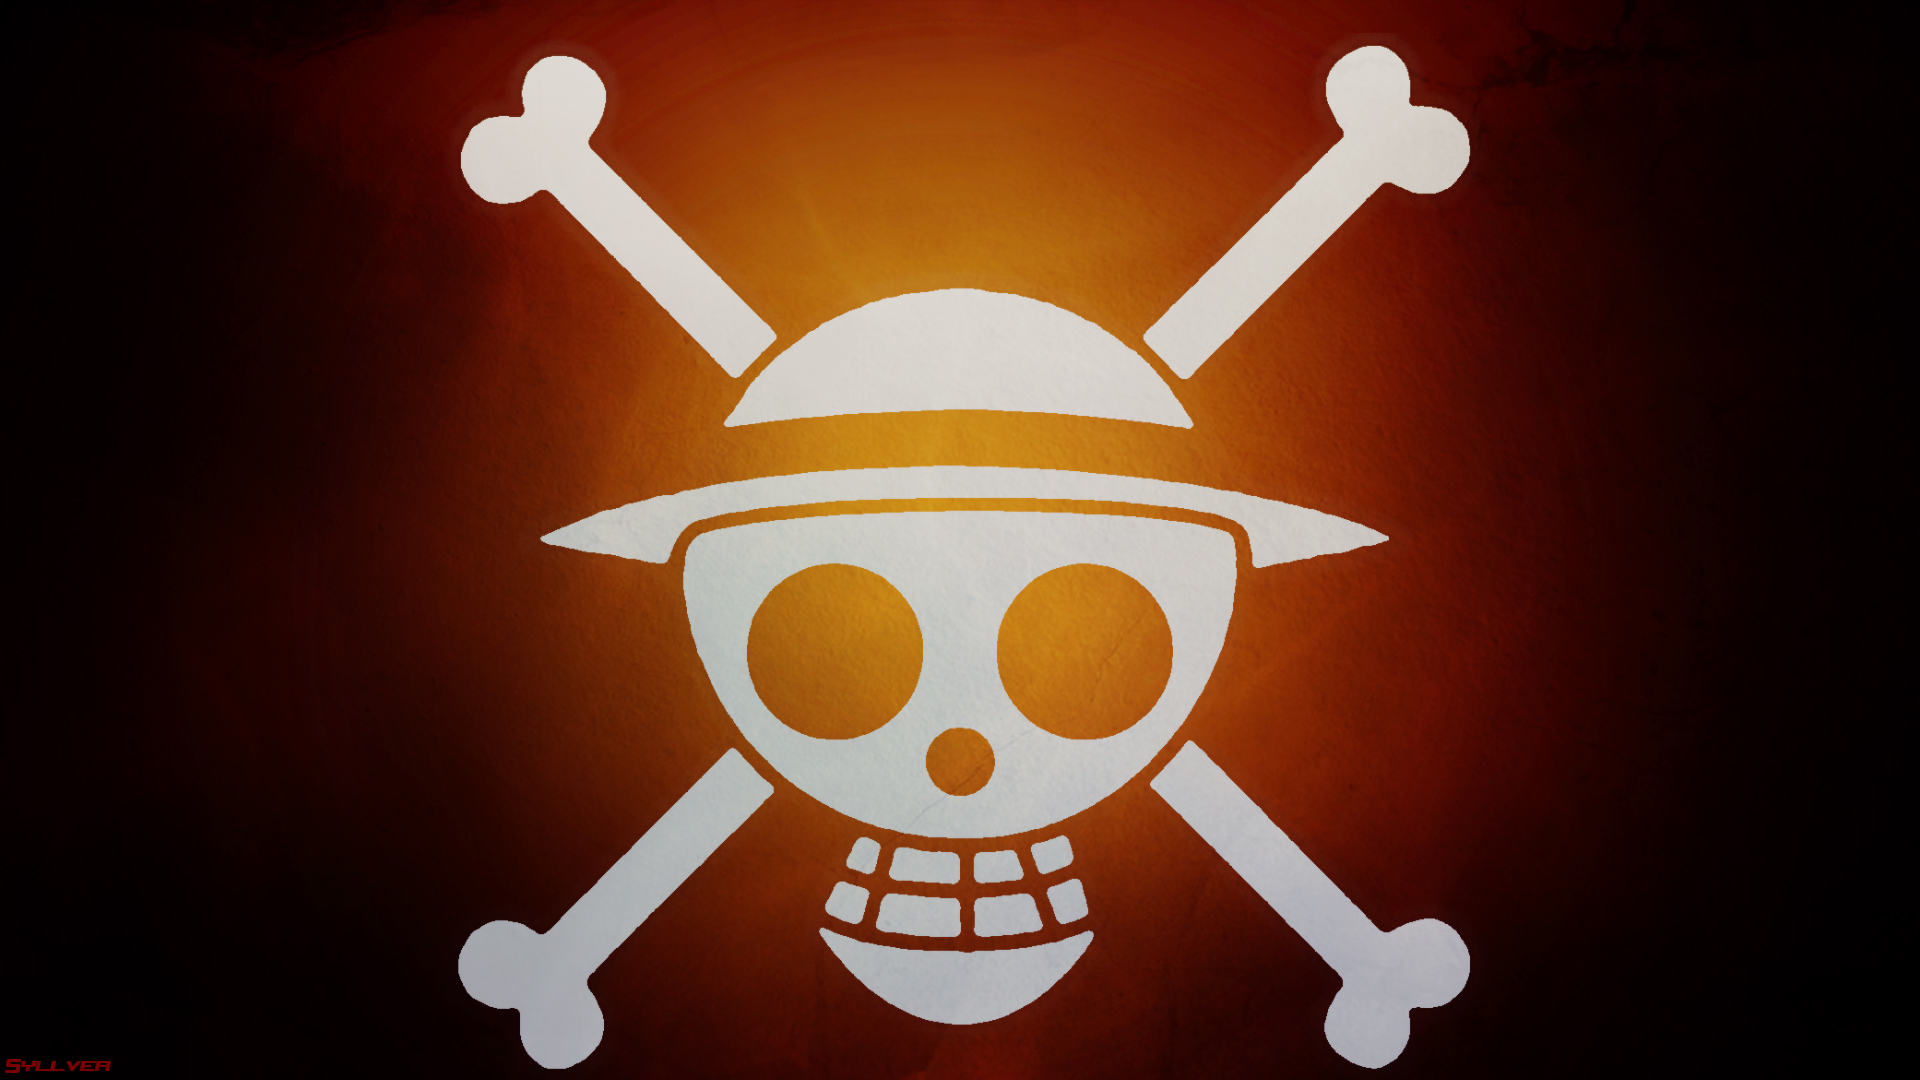 Luffy Jolly Roger Hd Wallpaper Background Image